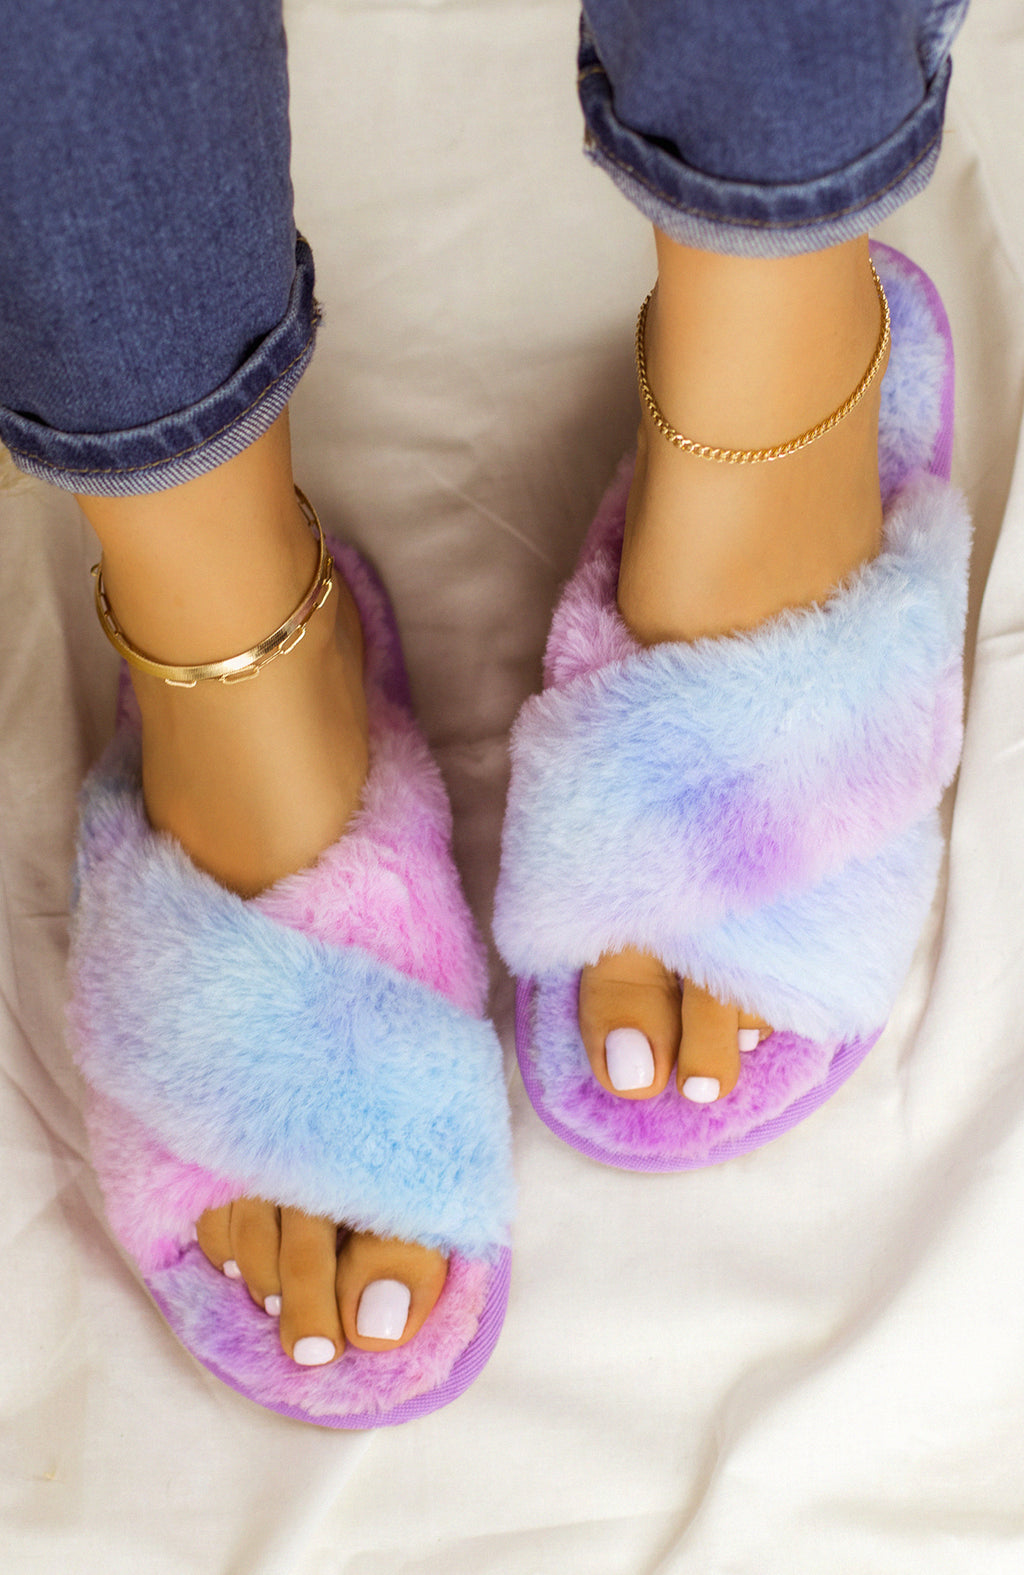 Easy Lounging - Tie Dye Sandals